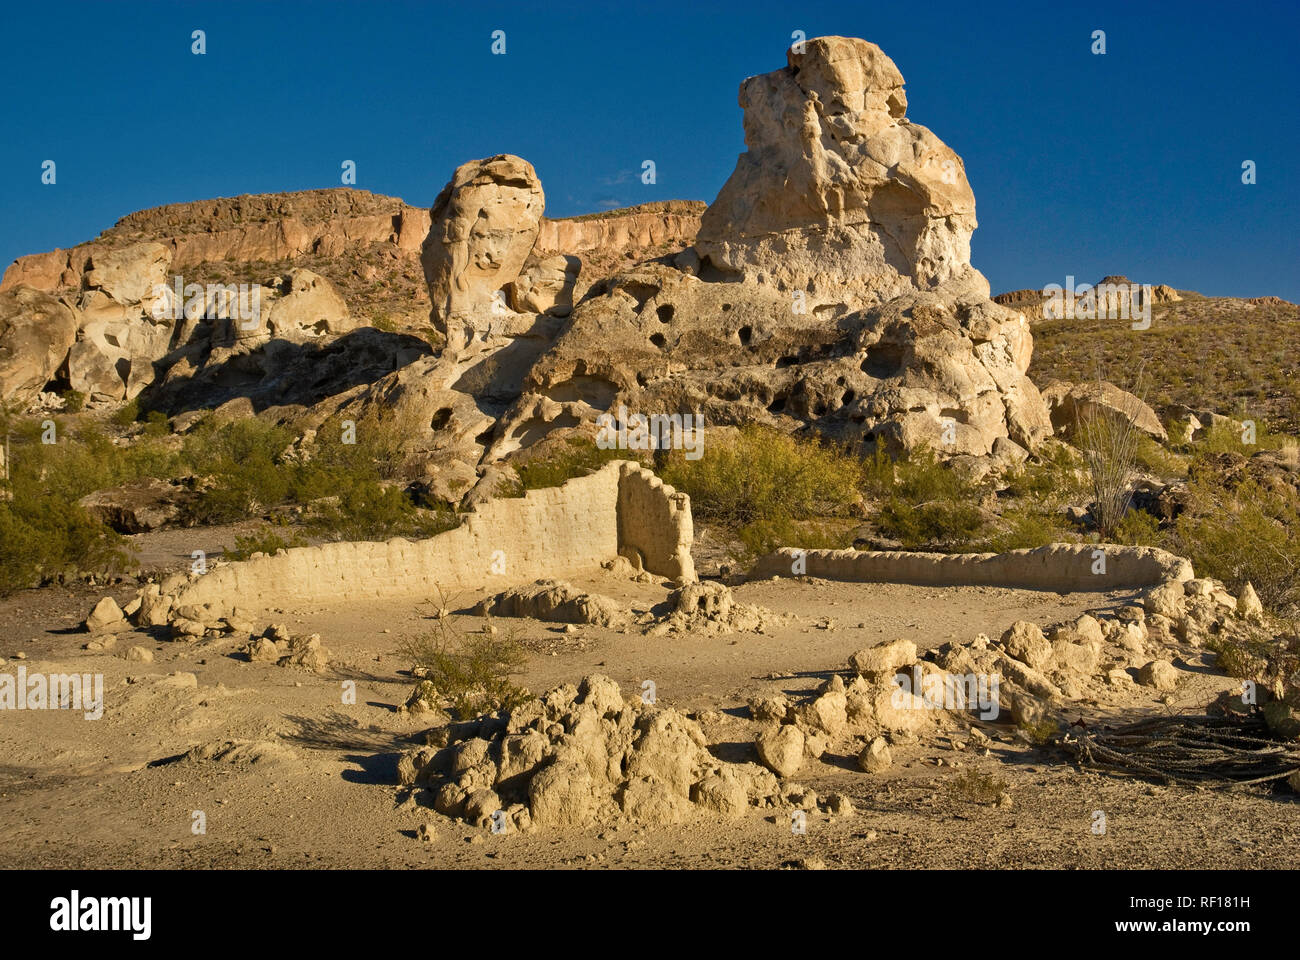 Ruins of adobe houses near abandoned mines in Three Dike Hill area in Bofecillos Mountains, Chihuahuan Desert, in Big Bend Ranch State Park, Texas USA - Stock Image